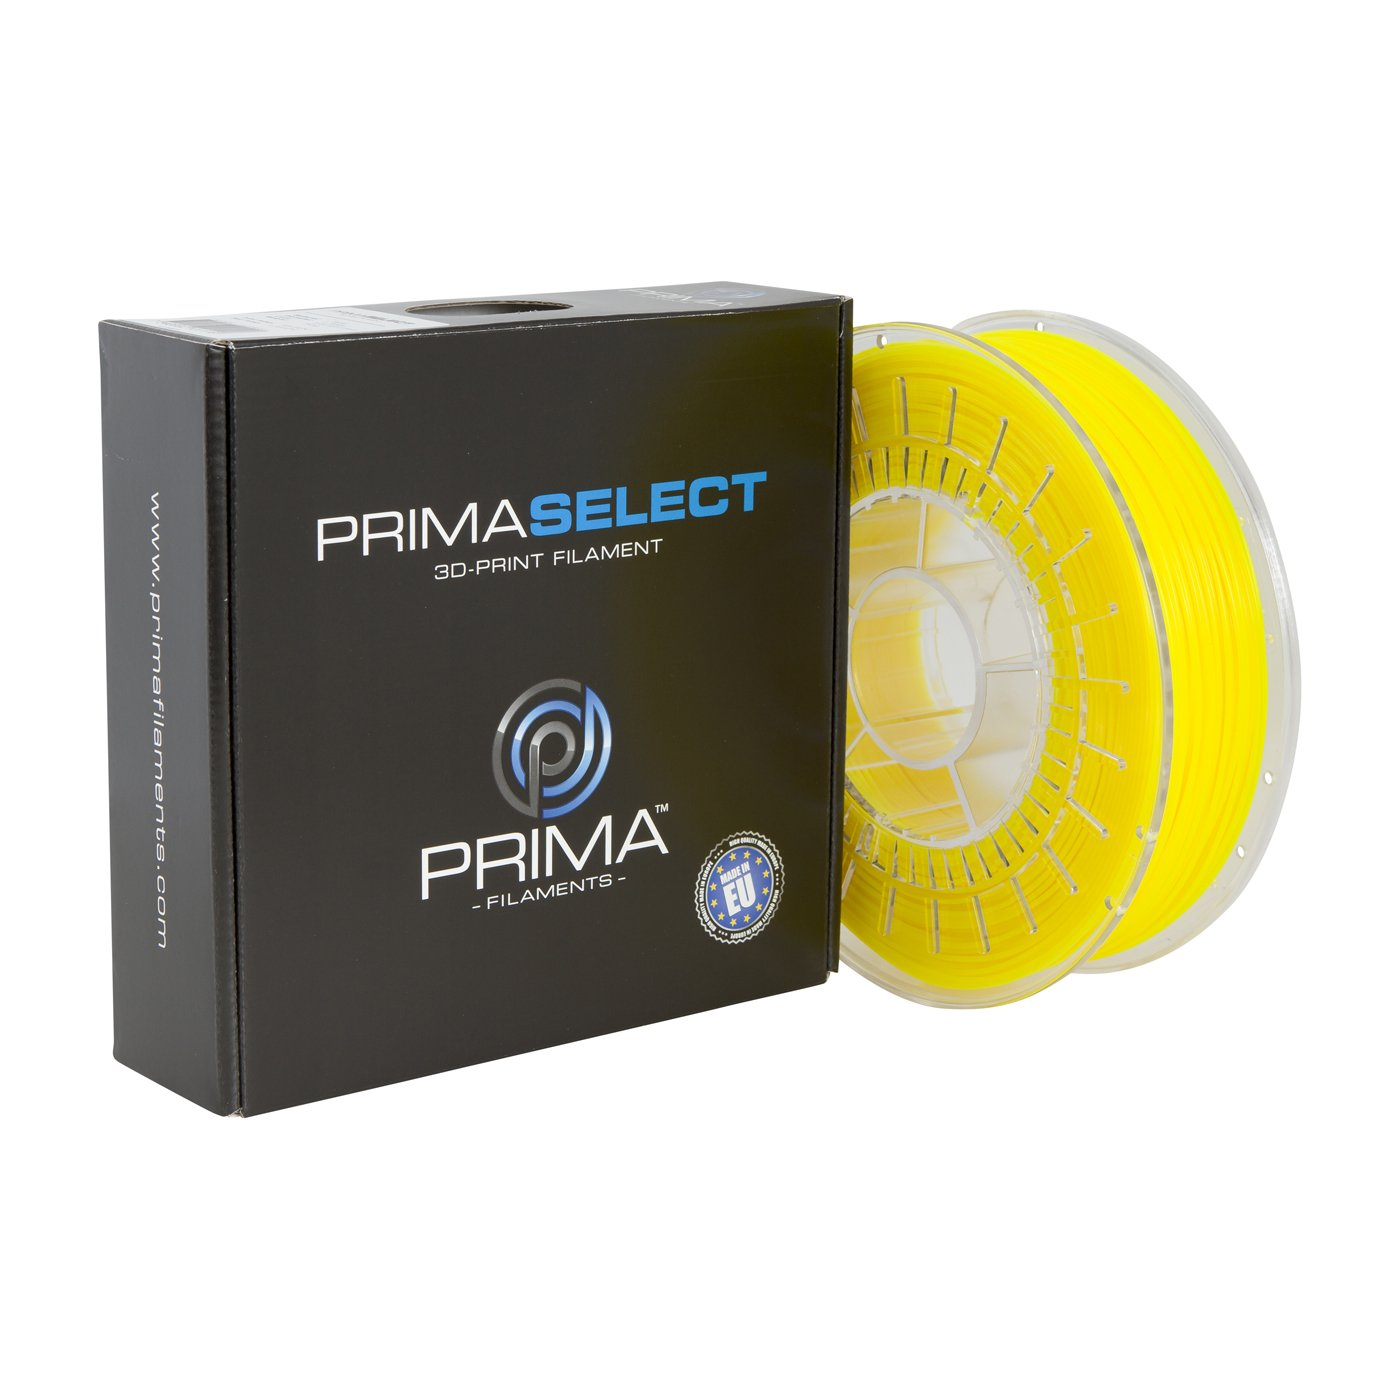 Prima Filaments PS-PLA-285-0750-WH PrimaSelect PLA Filament, 2.85 mm, 750 g, White